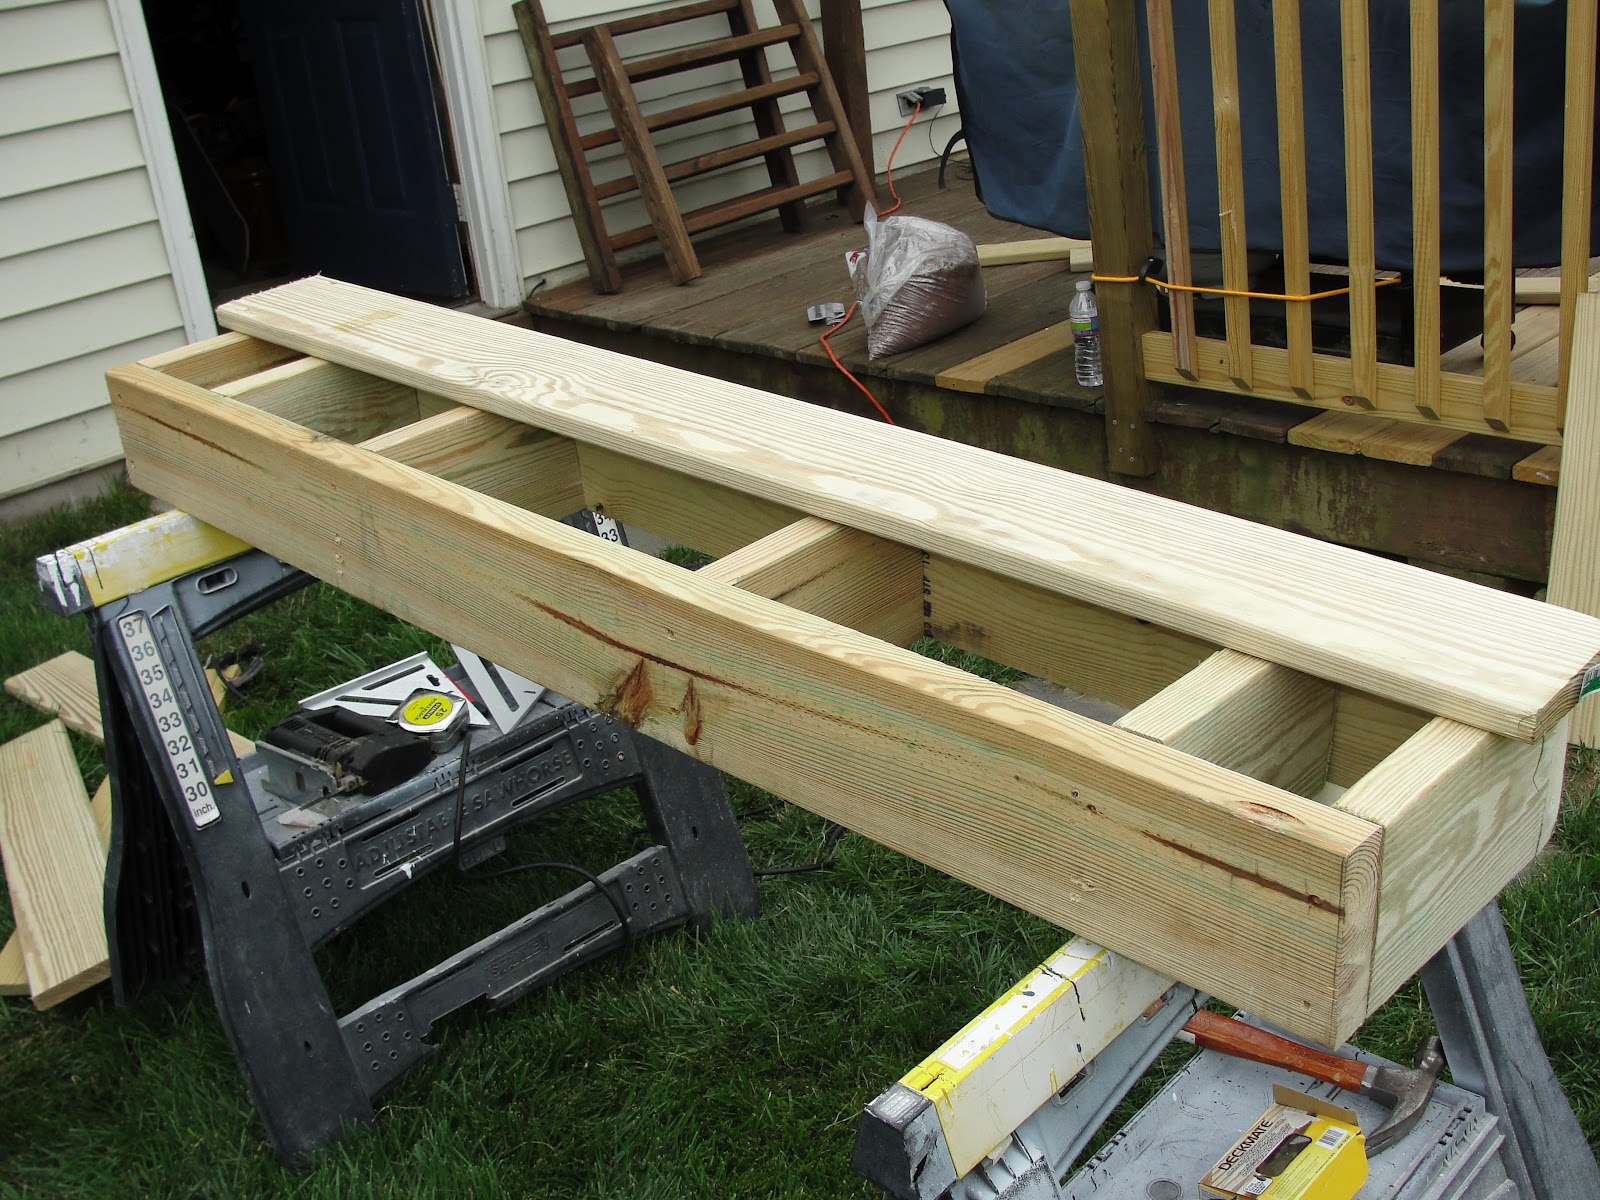 Lessons from the garden building a box step for the deck Step by step to build a house